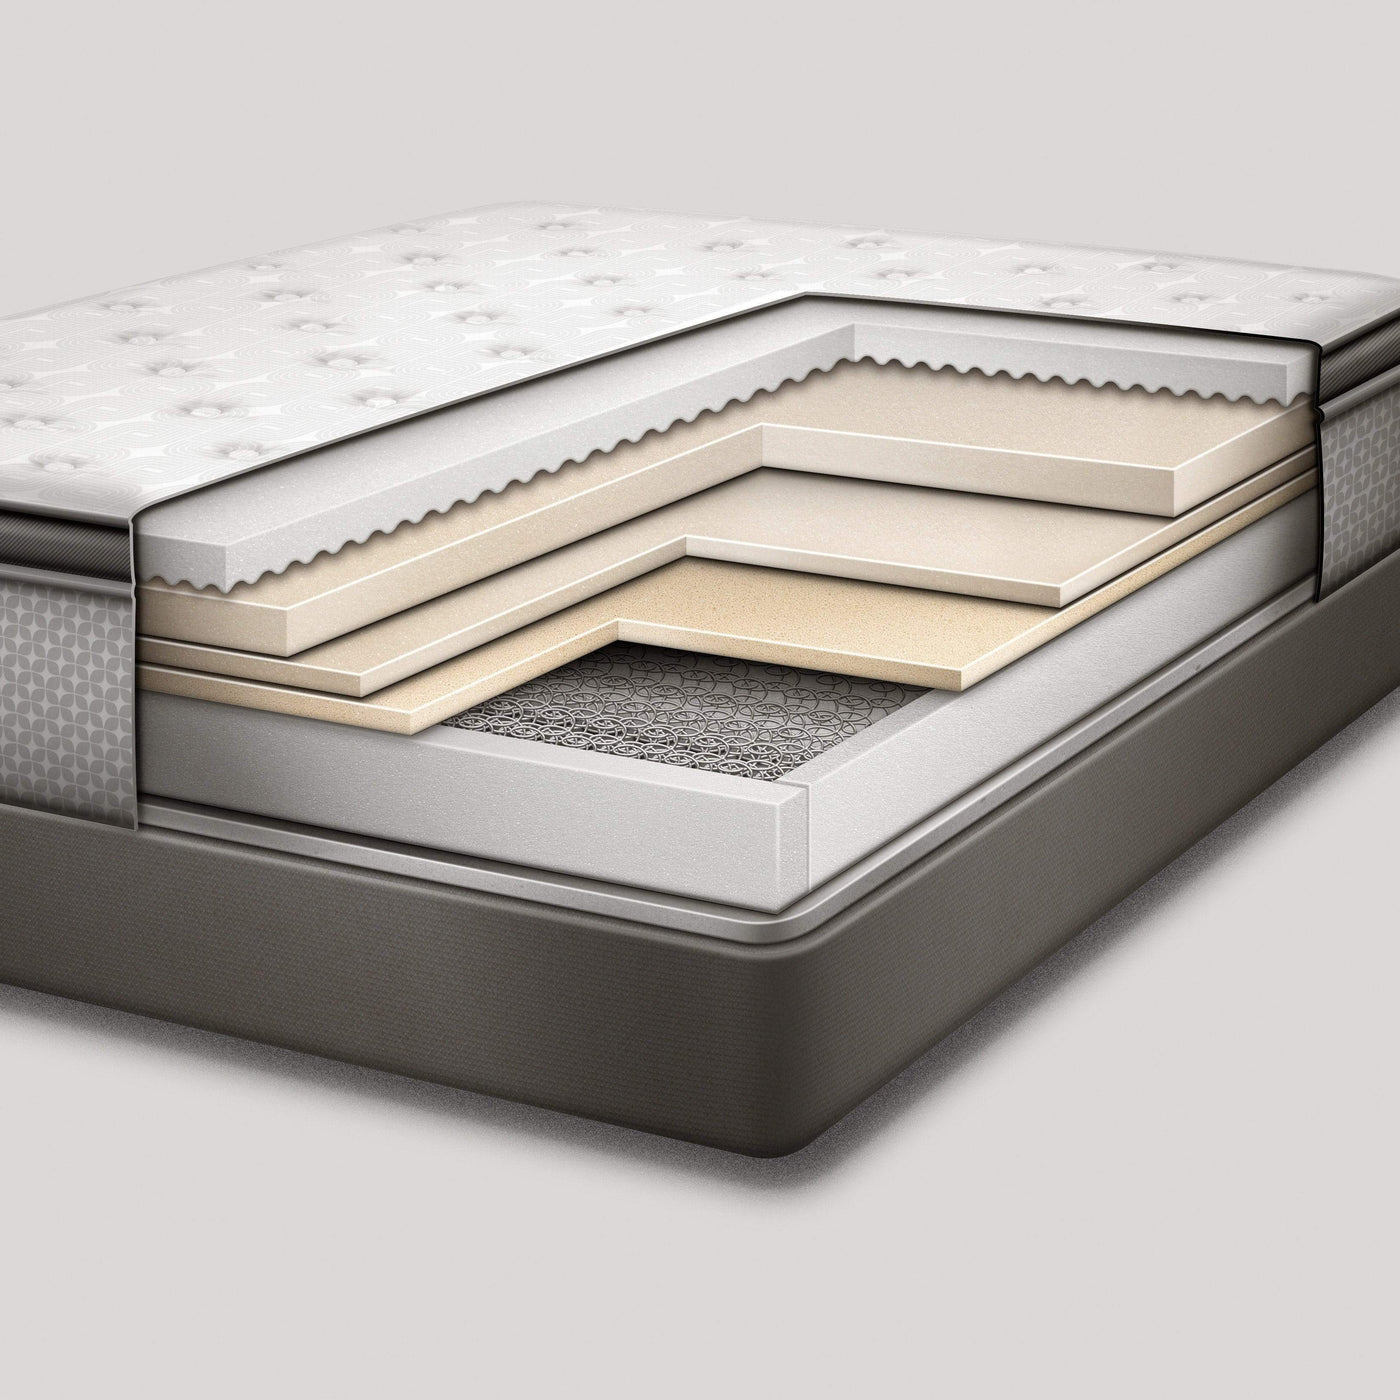 mattress mattresses image king sealy change kingsmill performance product pillow to posturepedic top item click plush